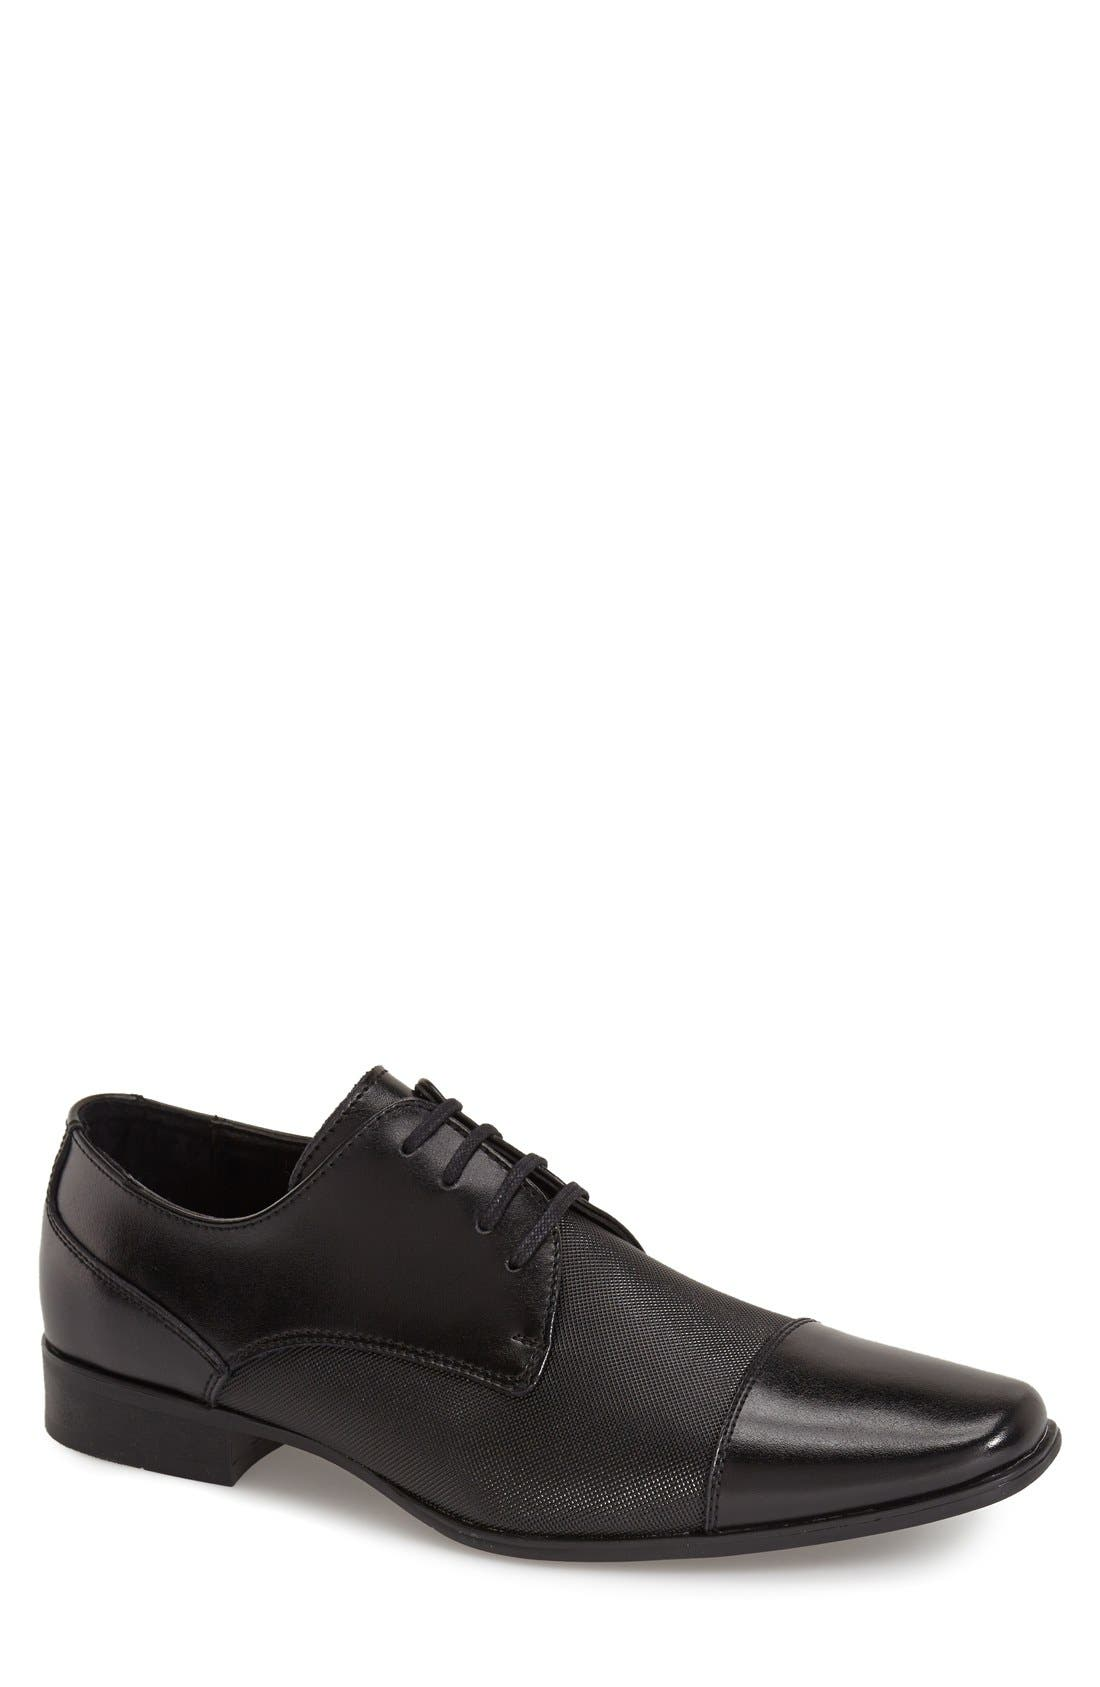 'Bram' Cap Toe Derby,                         Main,                         color, Black